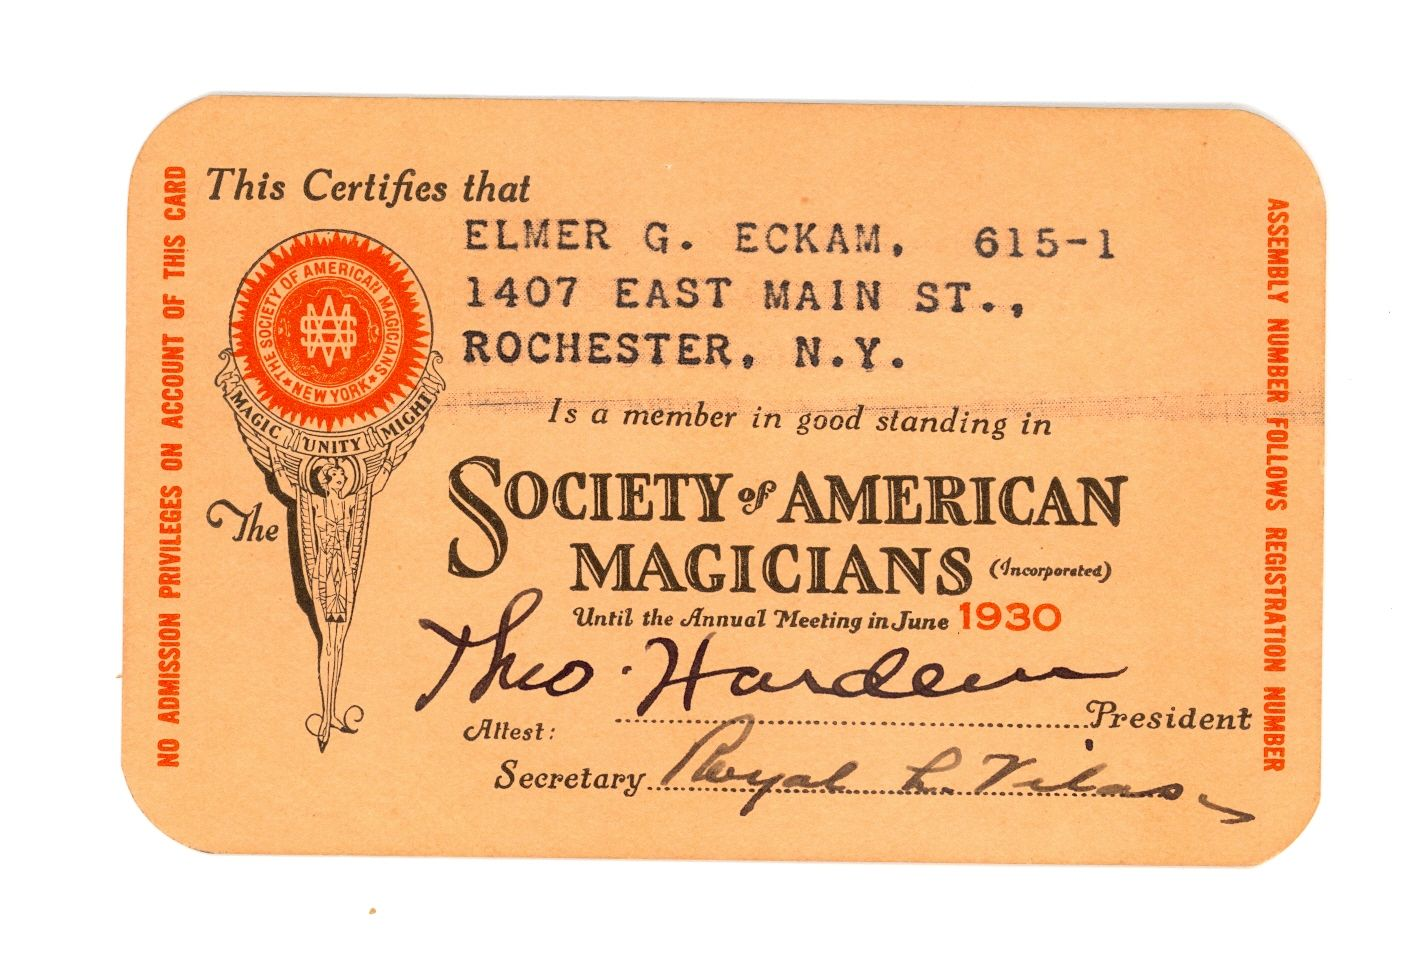 Hardeens signature in the front of the Society of American Magicians Membership Card